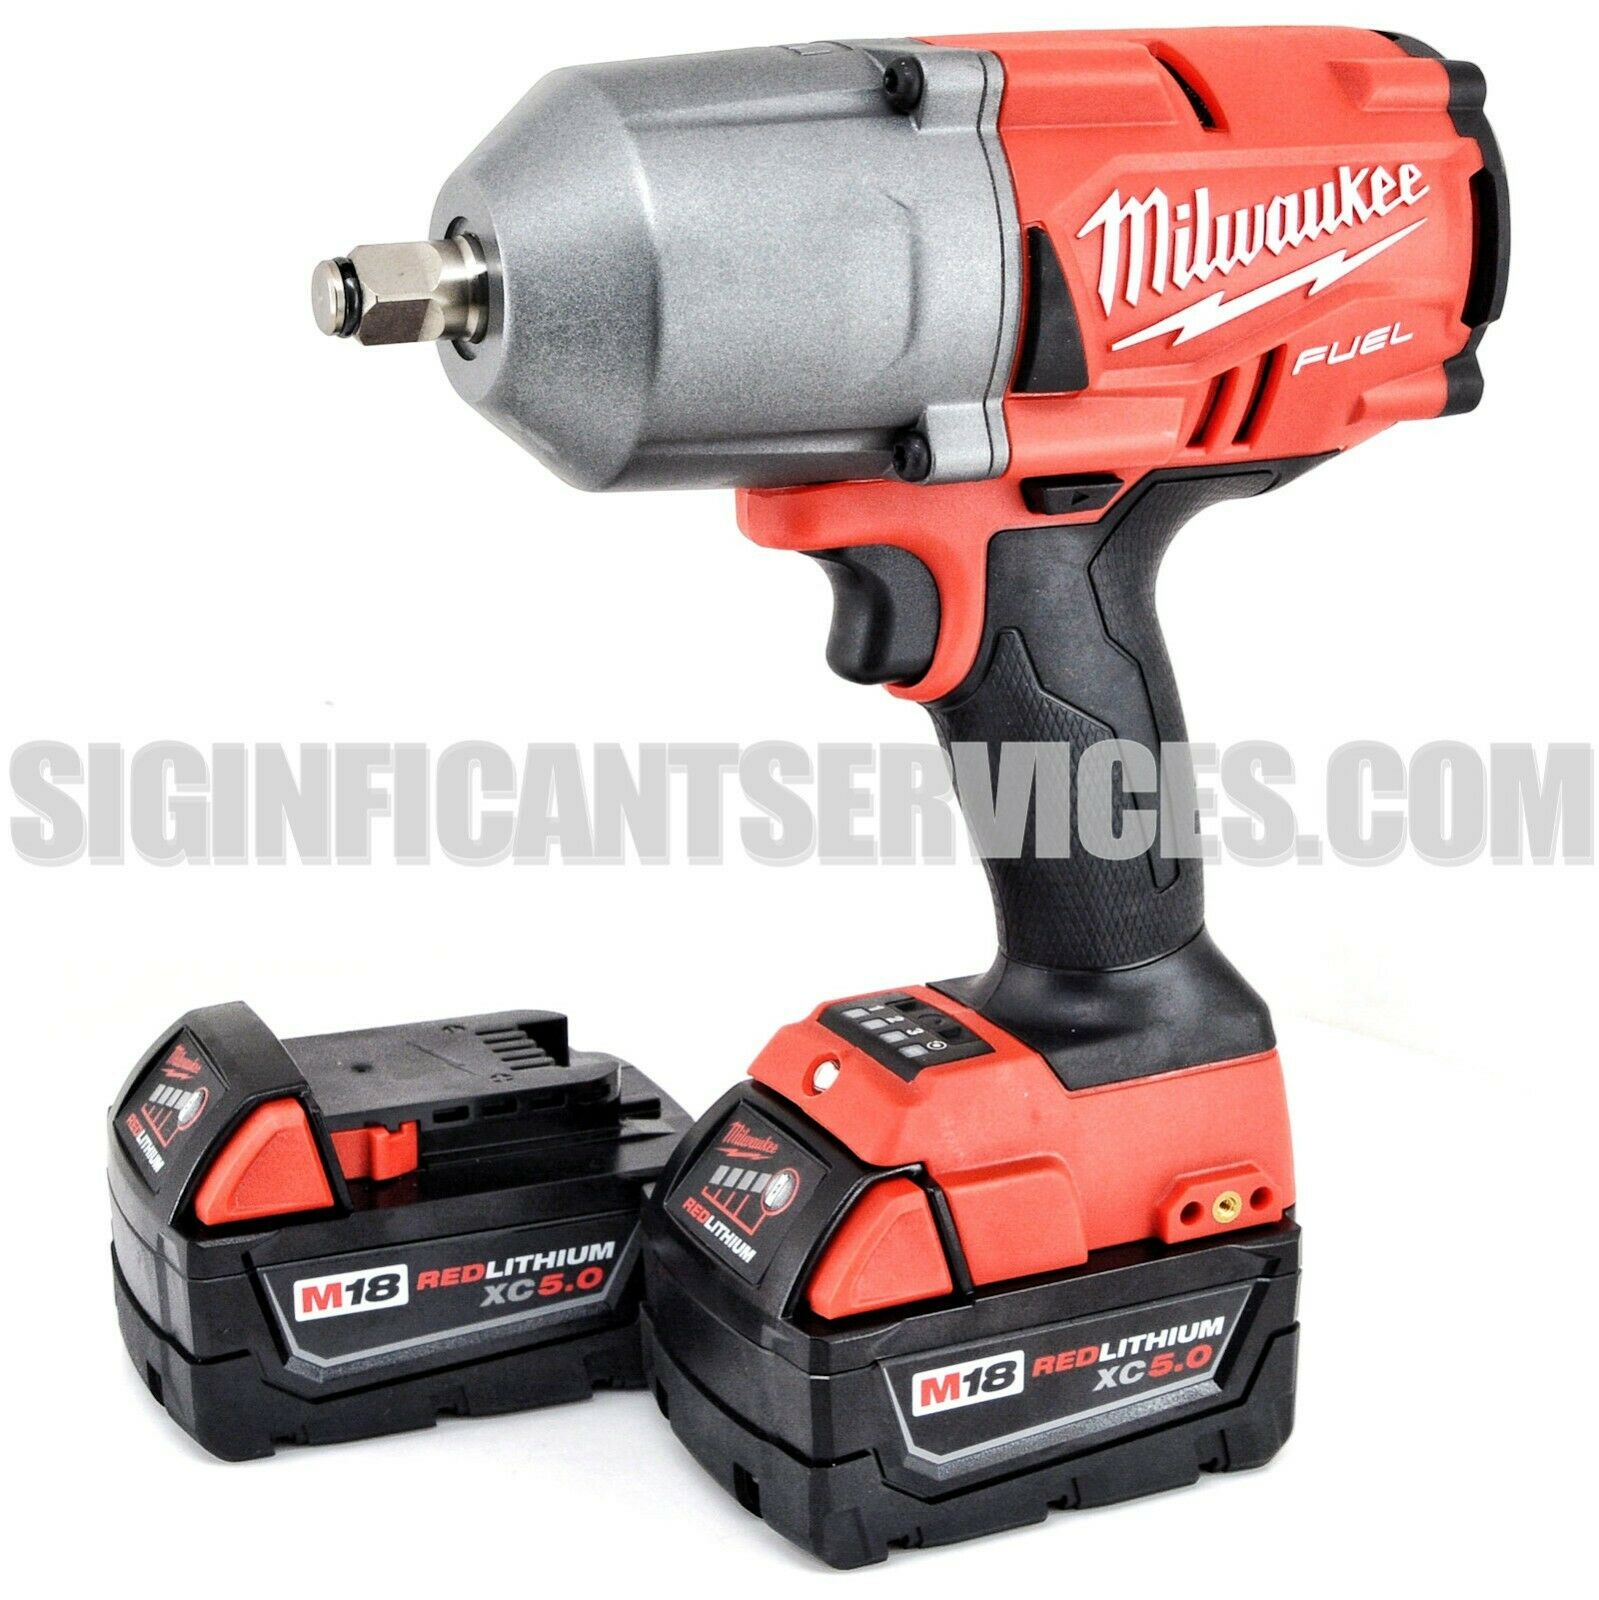 New Milwaukee 2767-20 M18 FUEL 1/2″ High Torque Impact Wrench 5.0 AH Batteries